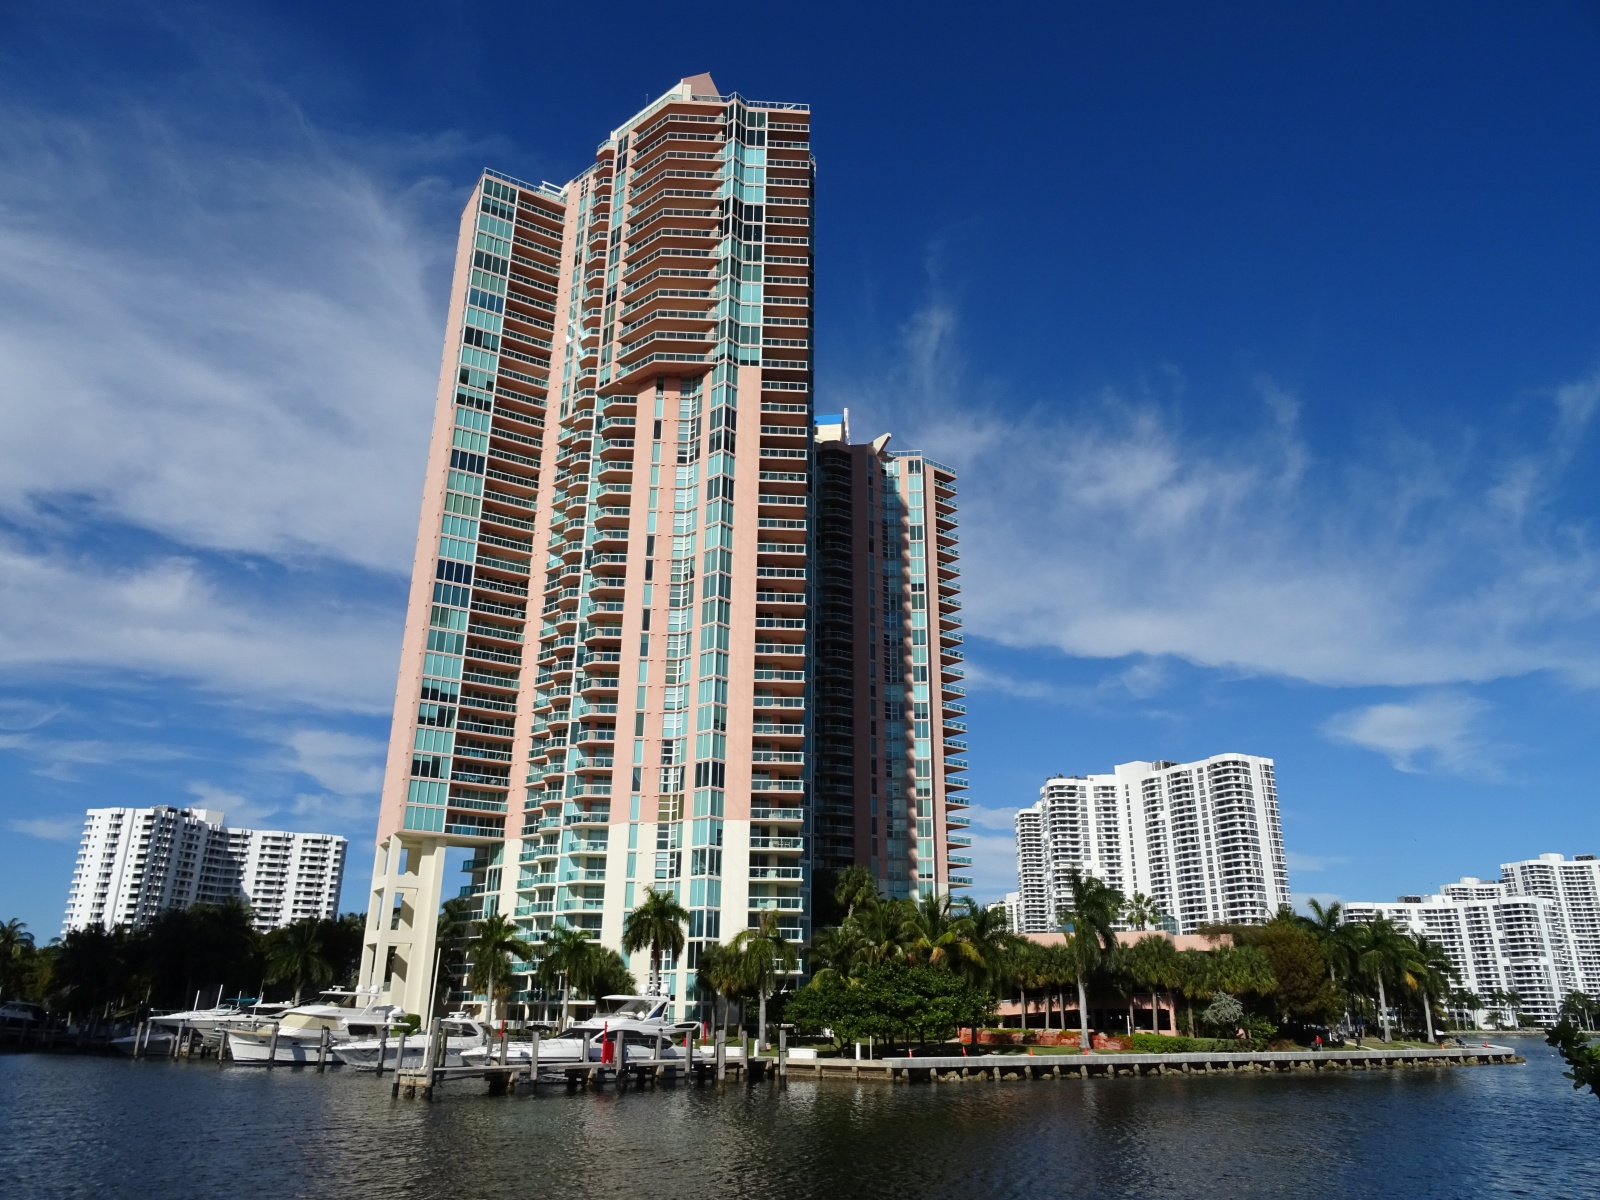 #HiddenBay, 3370 Hidden Bay Dr, #Aventura, Florida, 33180